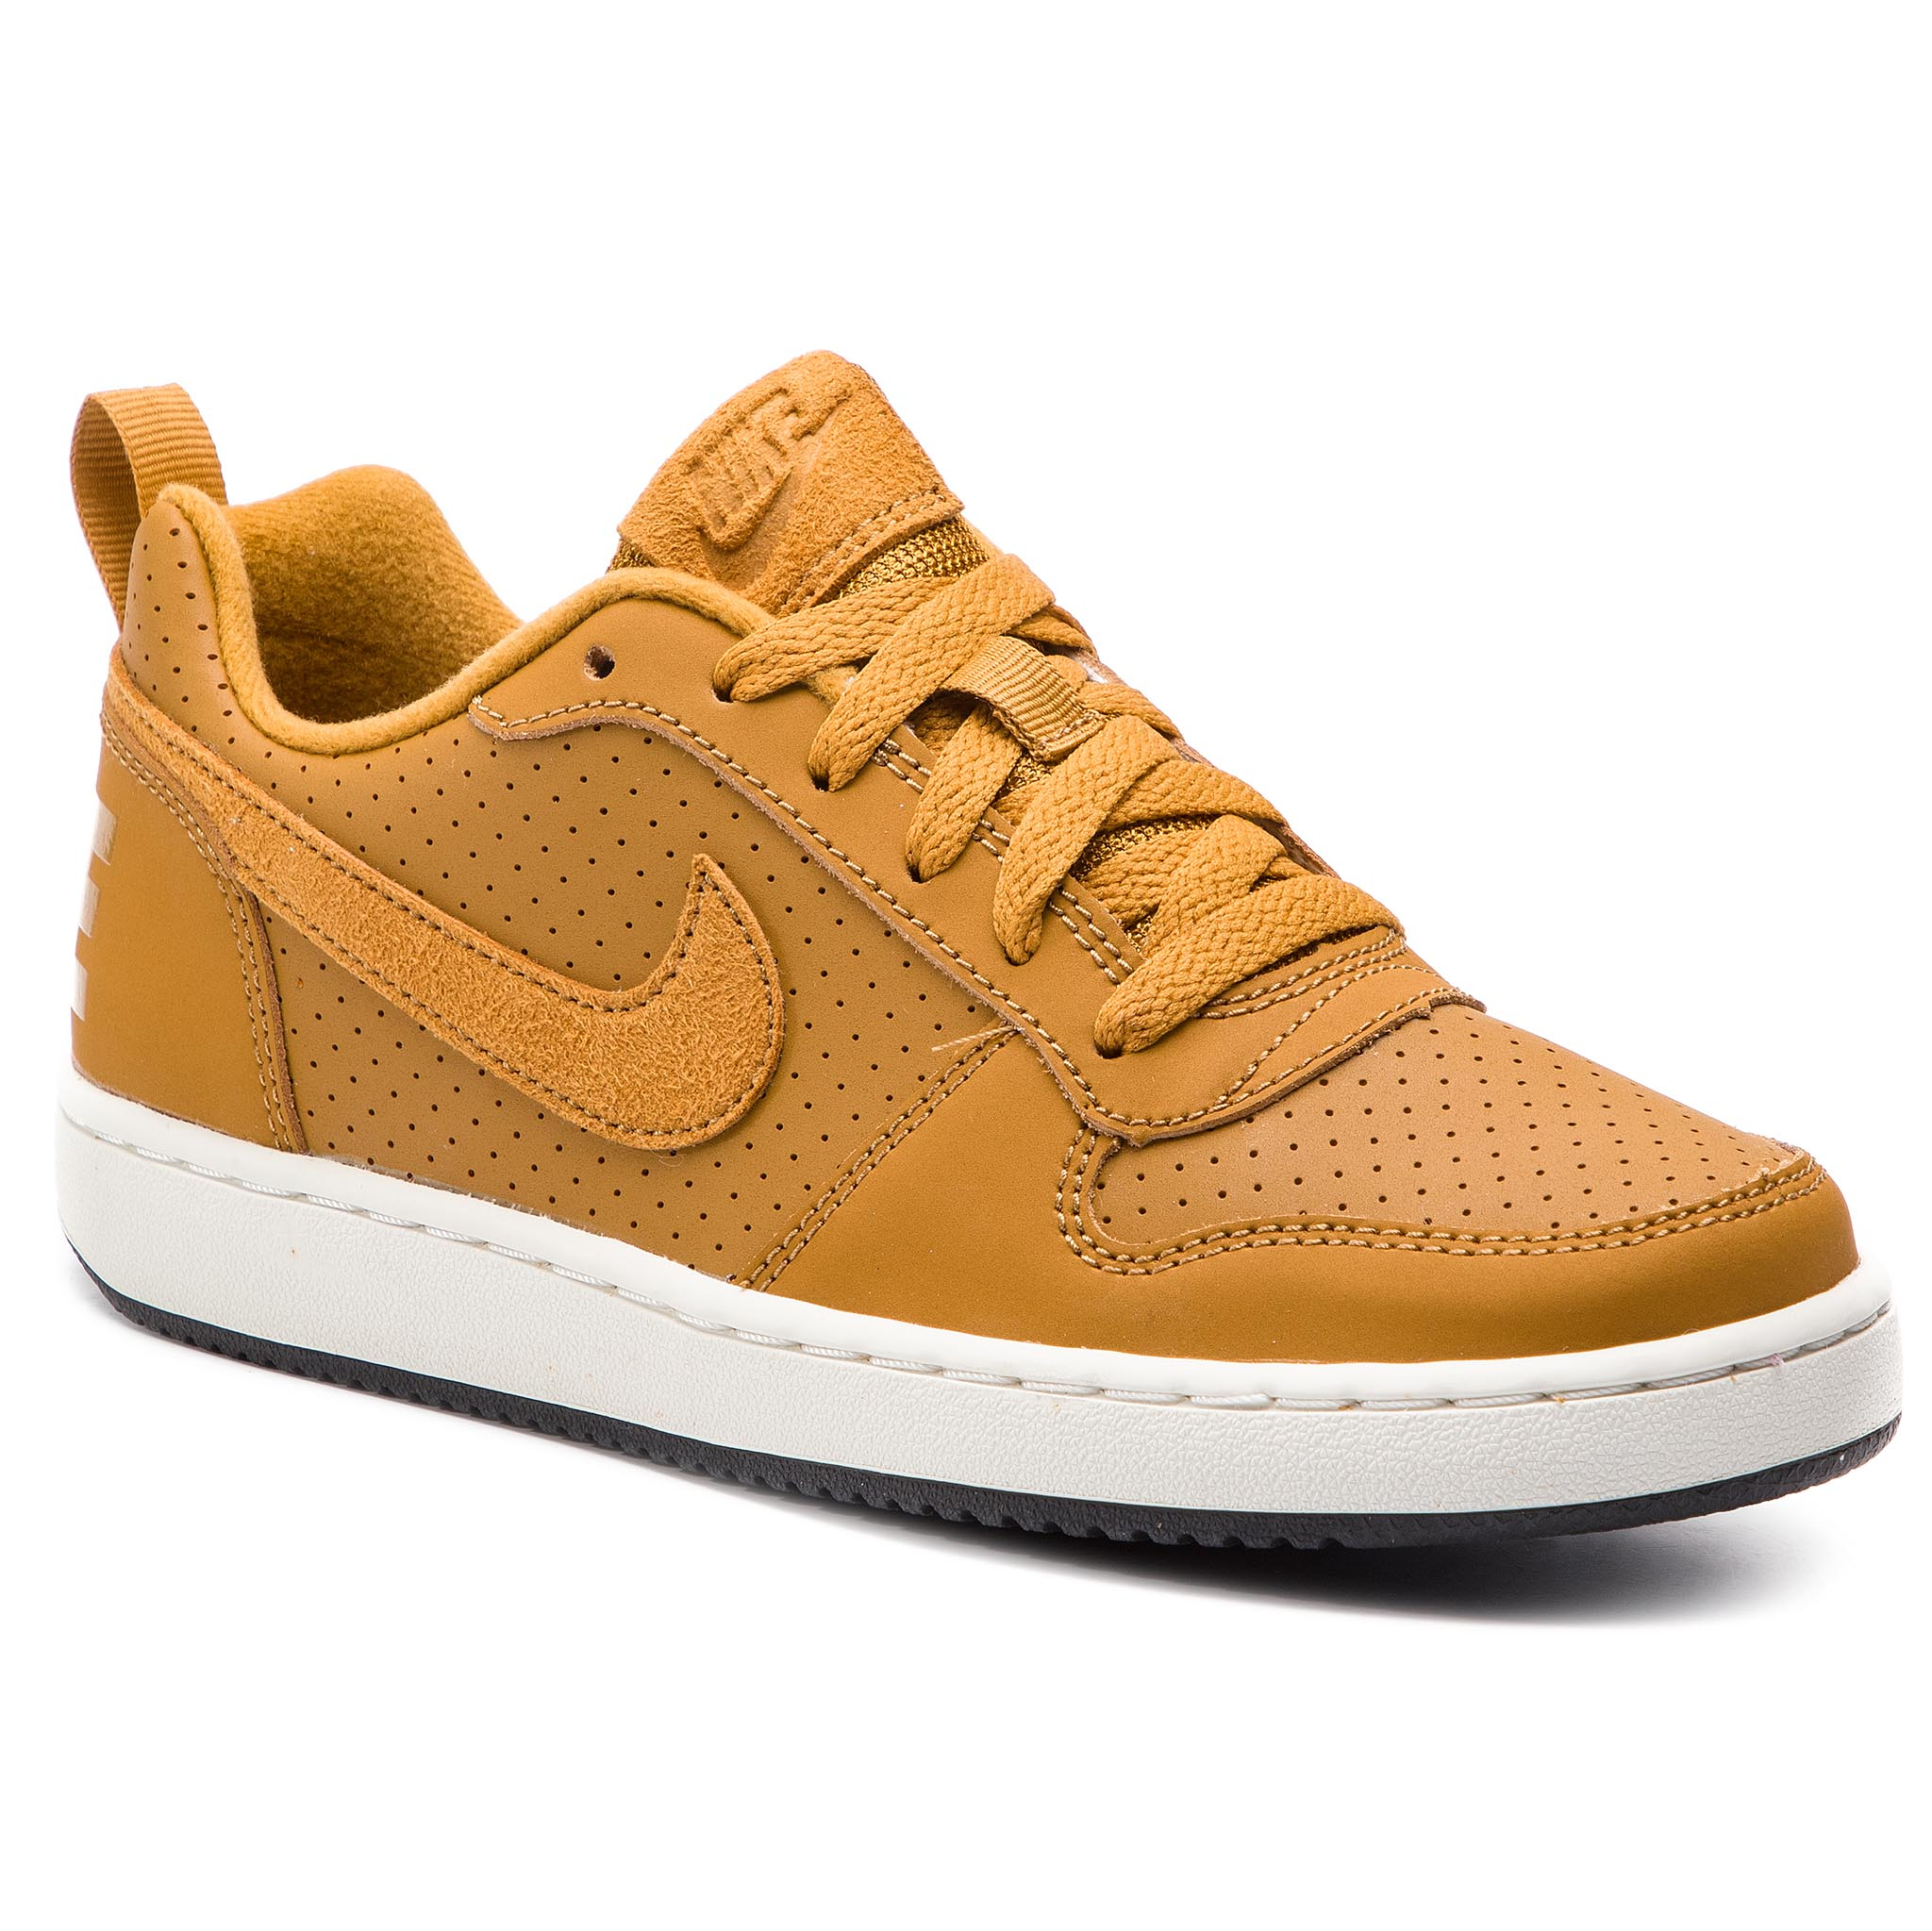 new arrival 6ae1d 9f873 9 ZAPATILLAS NIKE COURT BOROUGH LOW 839985 701 Baskets Femmes  chaussures